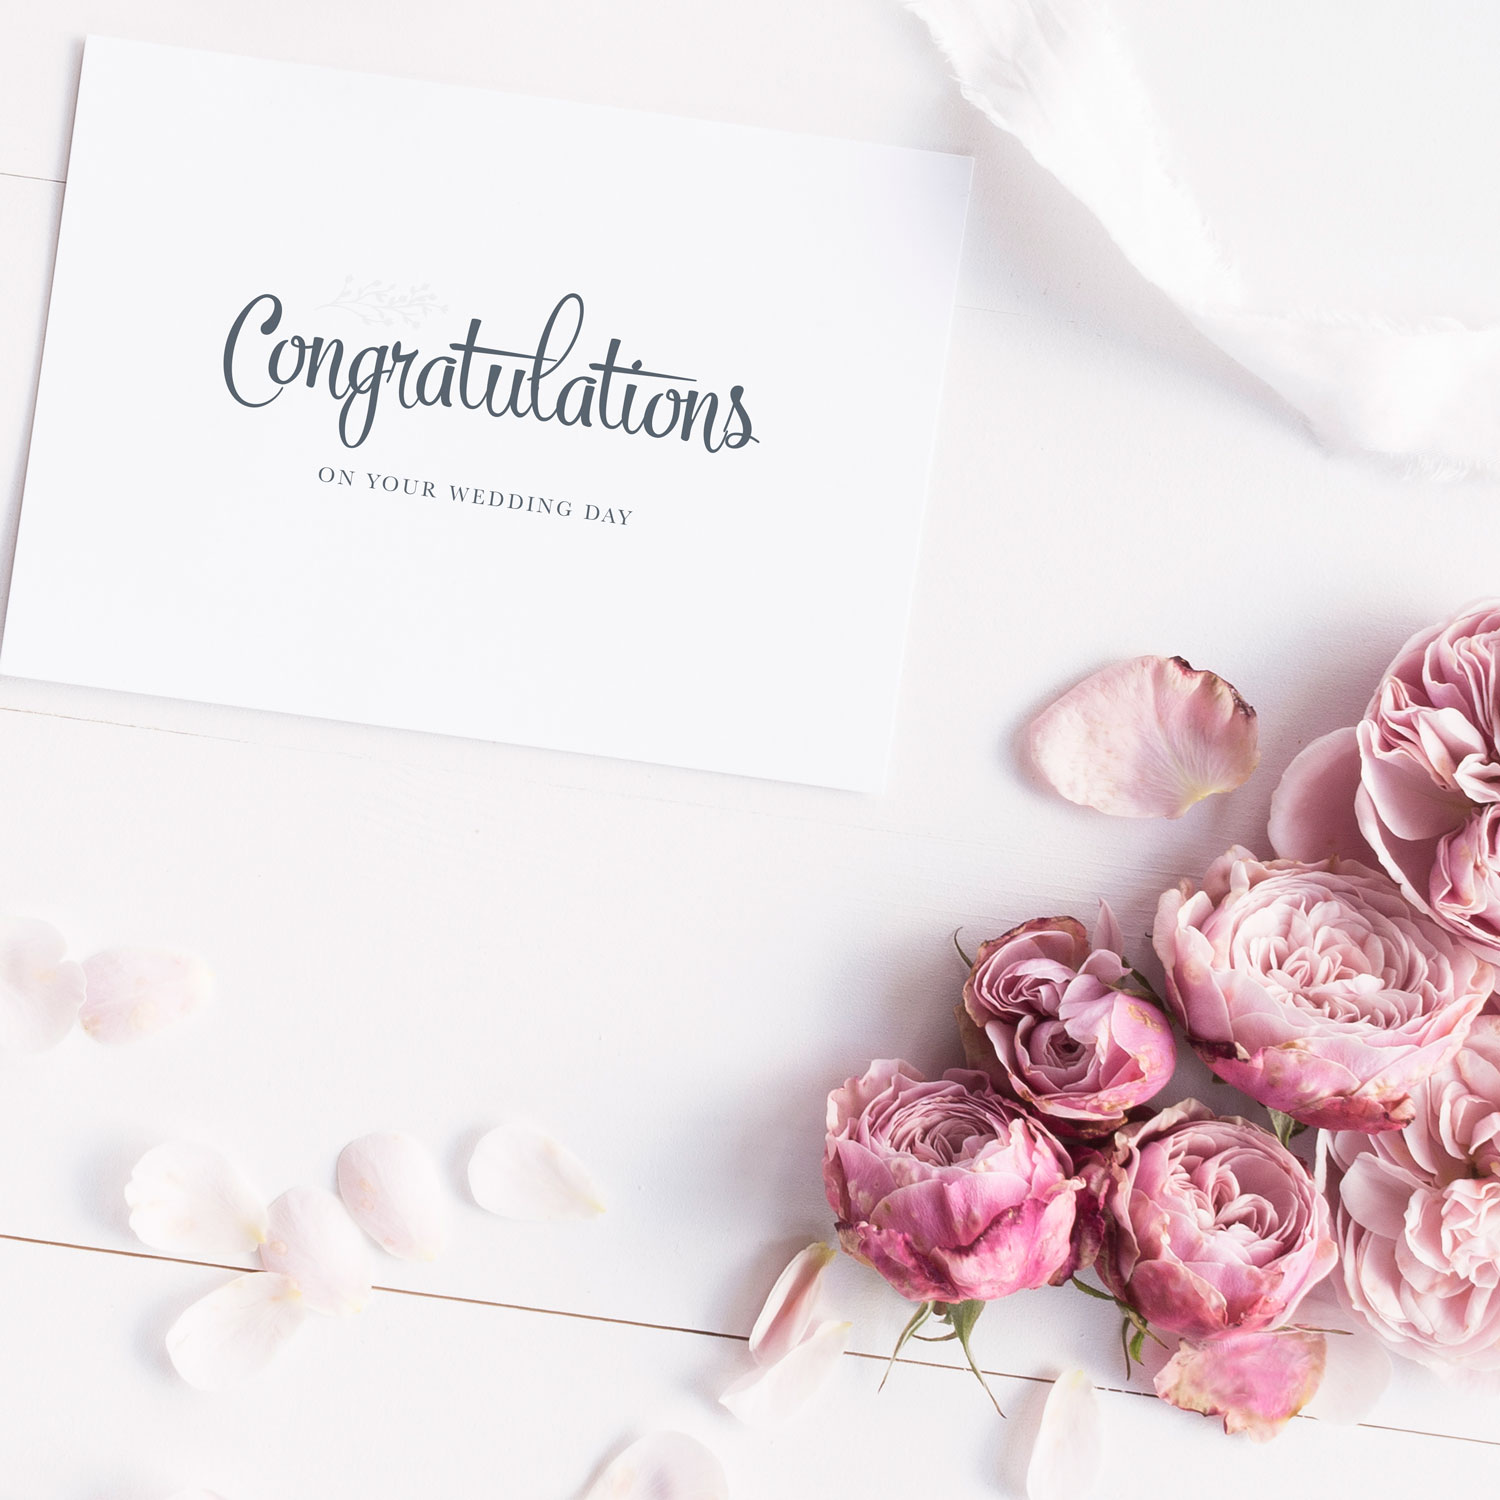 Congratulations On Your Wedding Day.Congratulations On Your Wedding Day Card Jakbern Creative